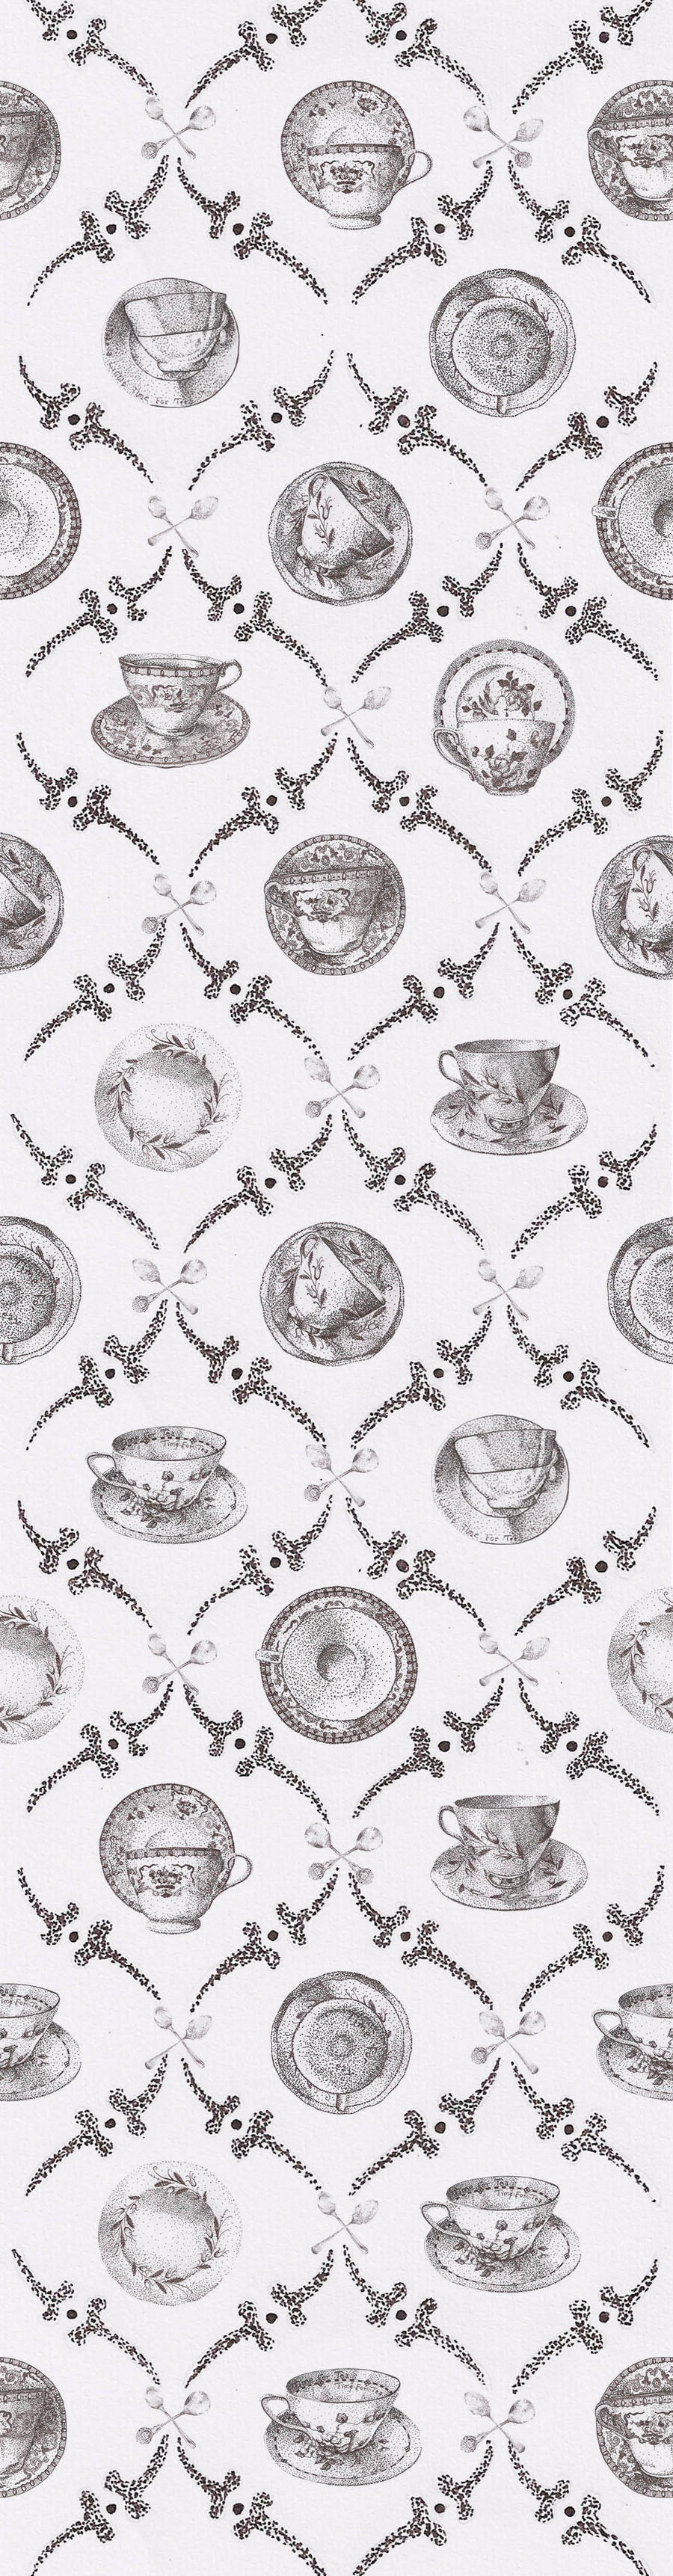 Victorian wallpaper by DiDi-S